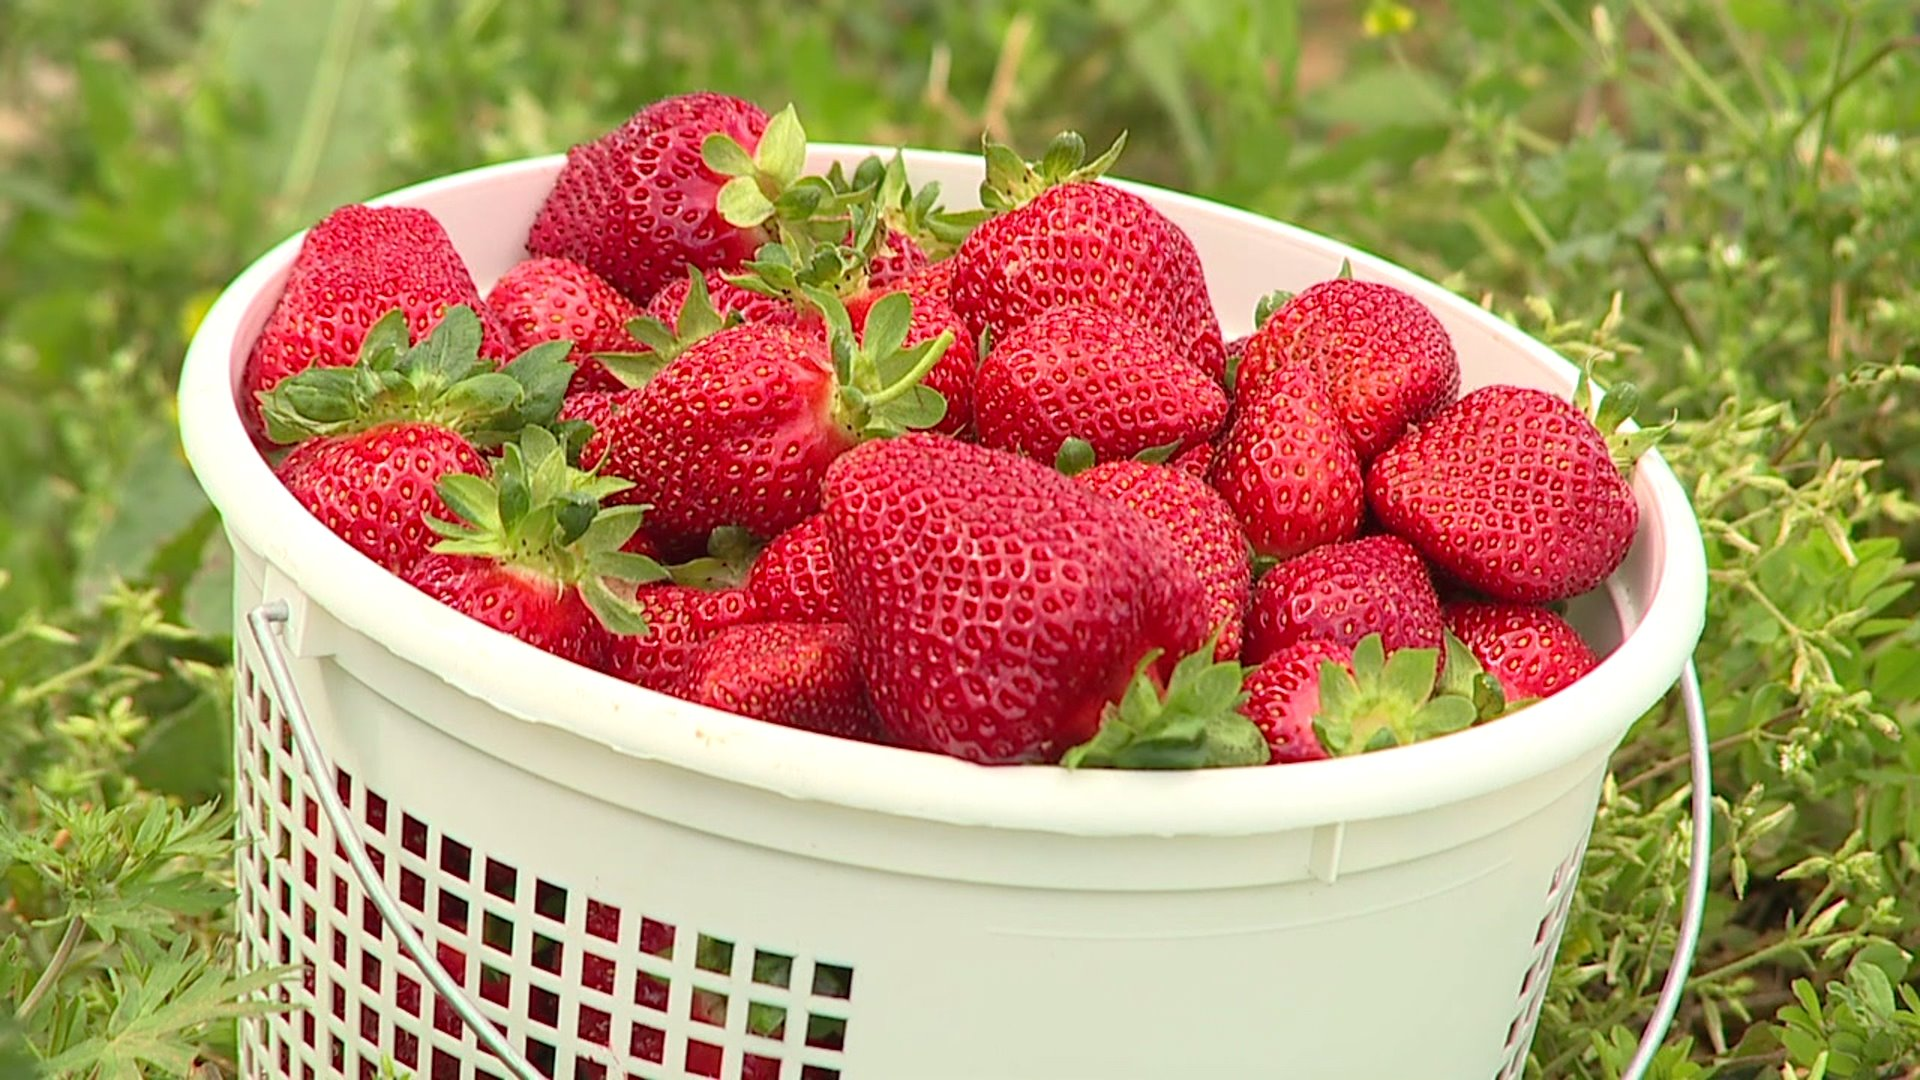 Strawberries at Rudd Farm in Greensboro